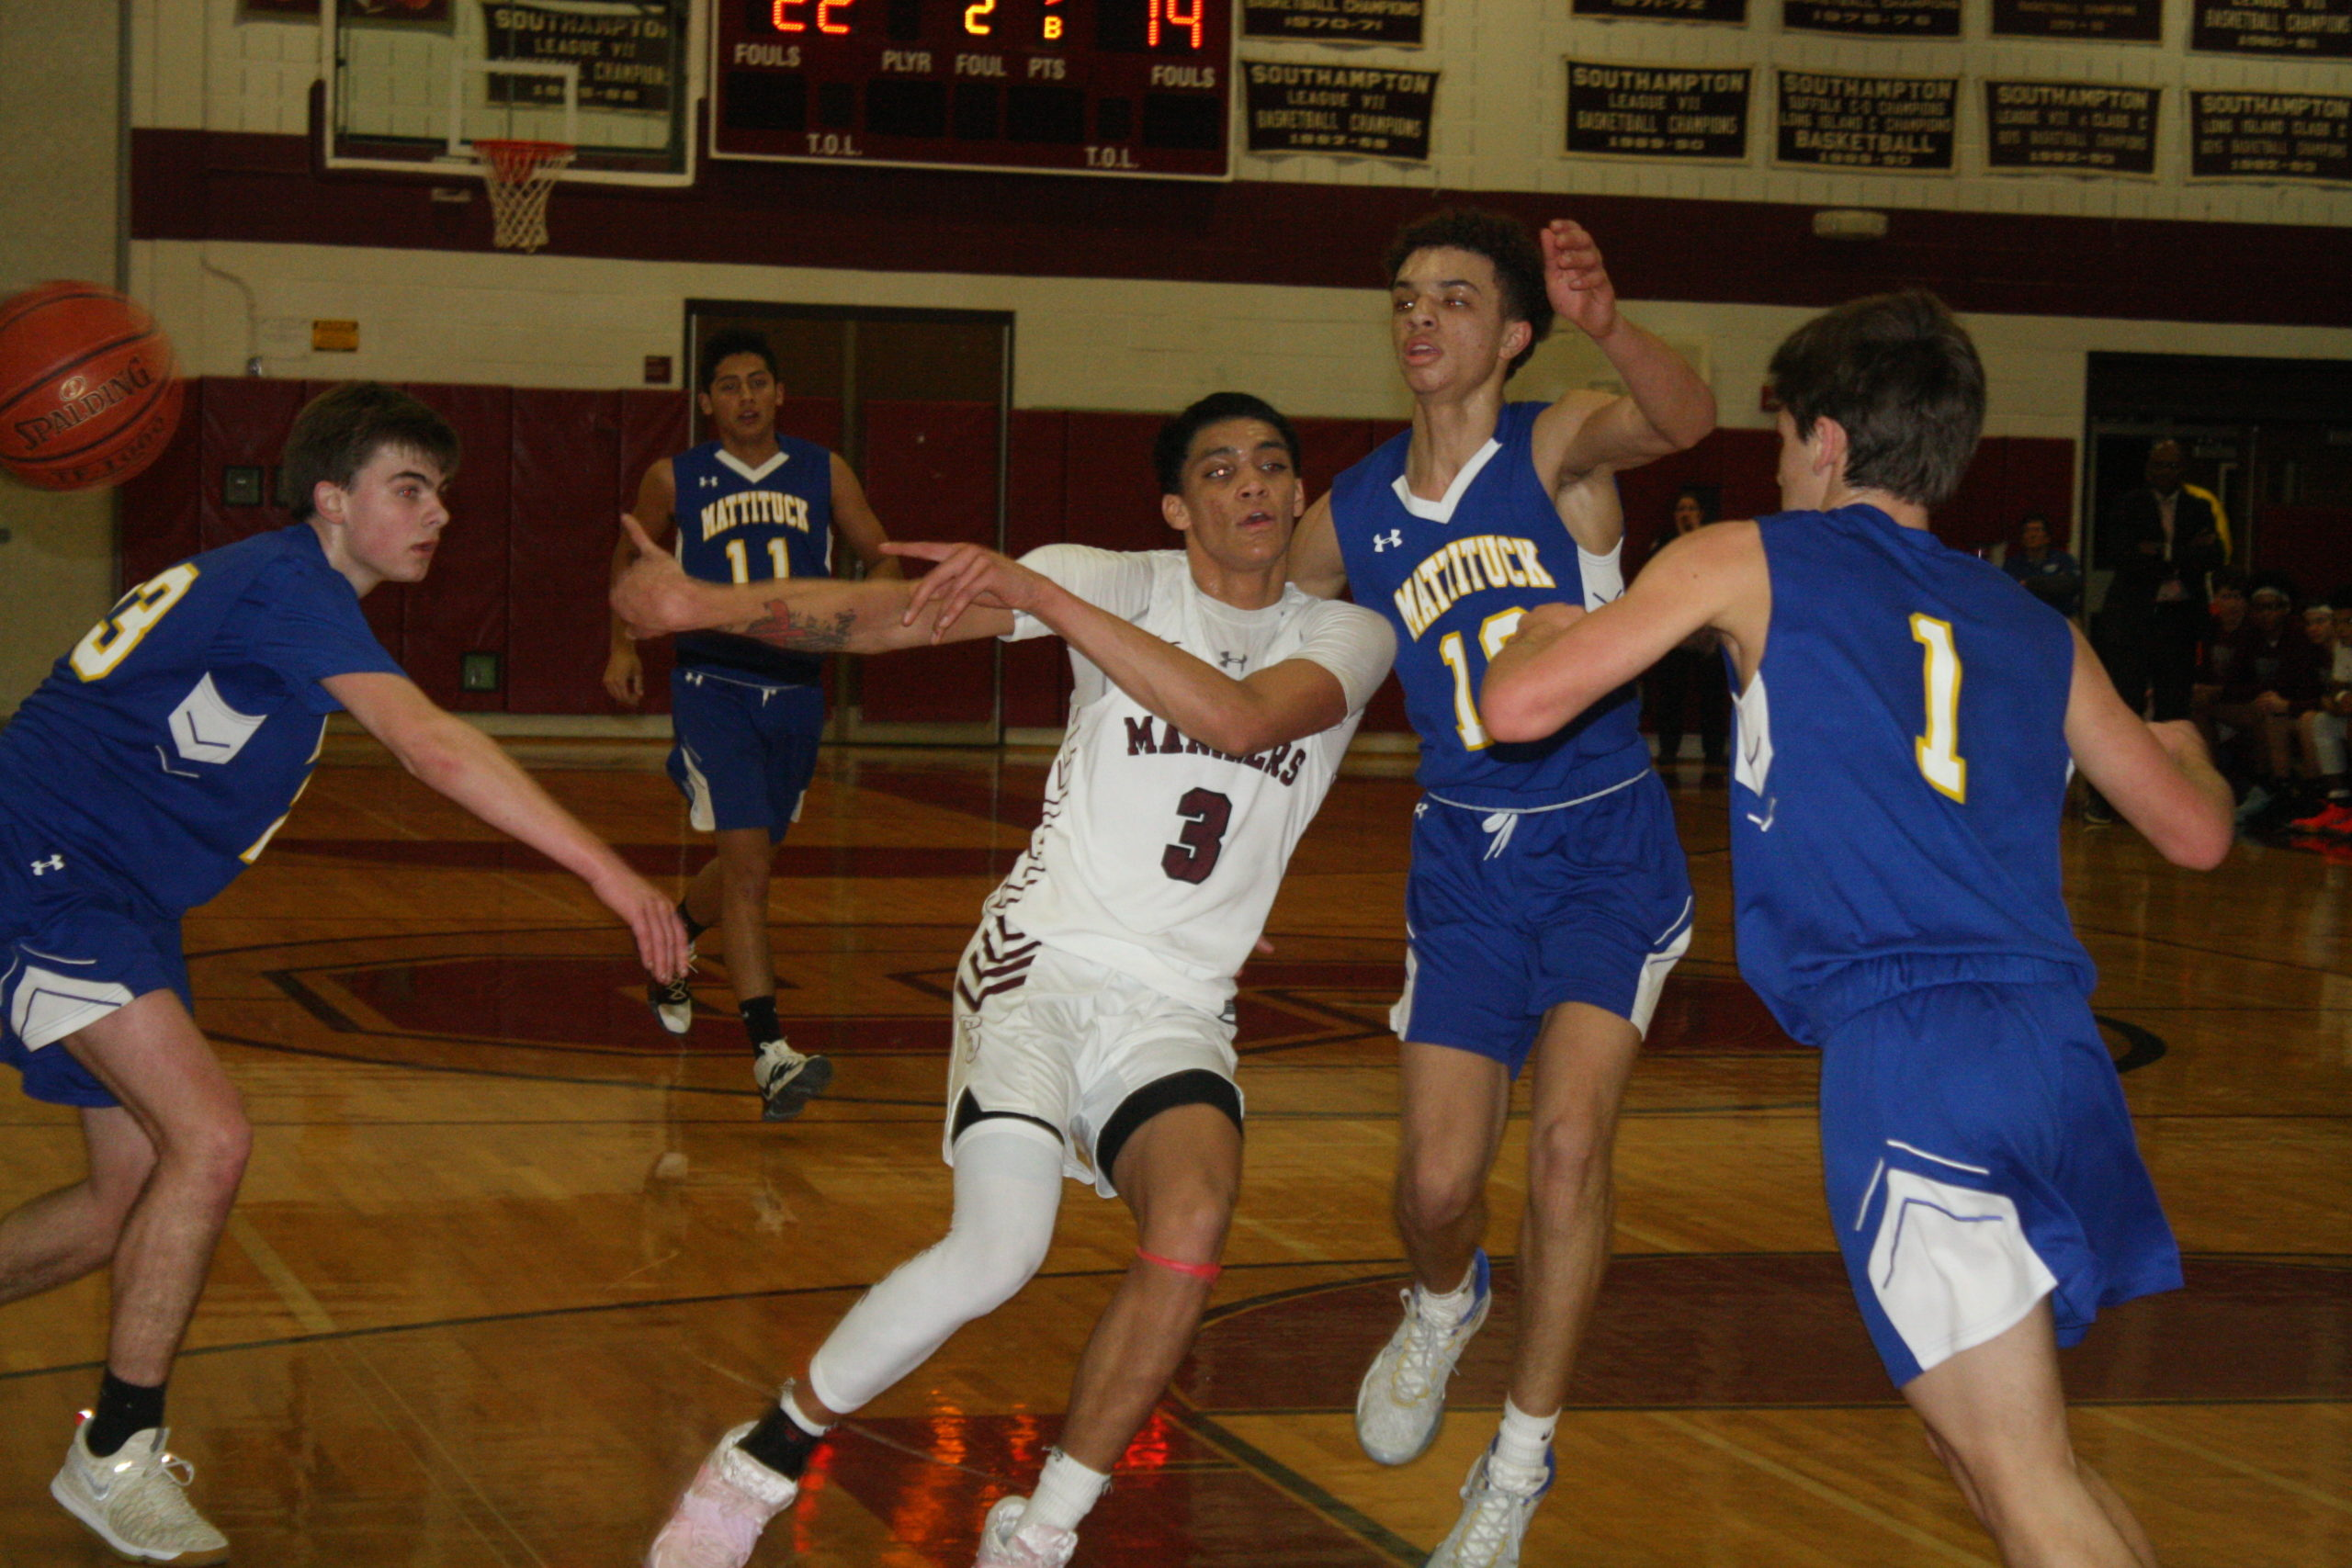 Southampton senior Dakoda Smith sends a no-look pass. He had a triple-double with 11 points, 16 rebounds and 10 assists.